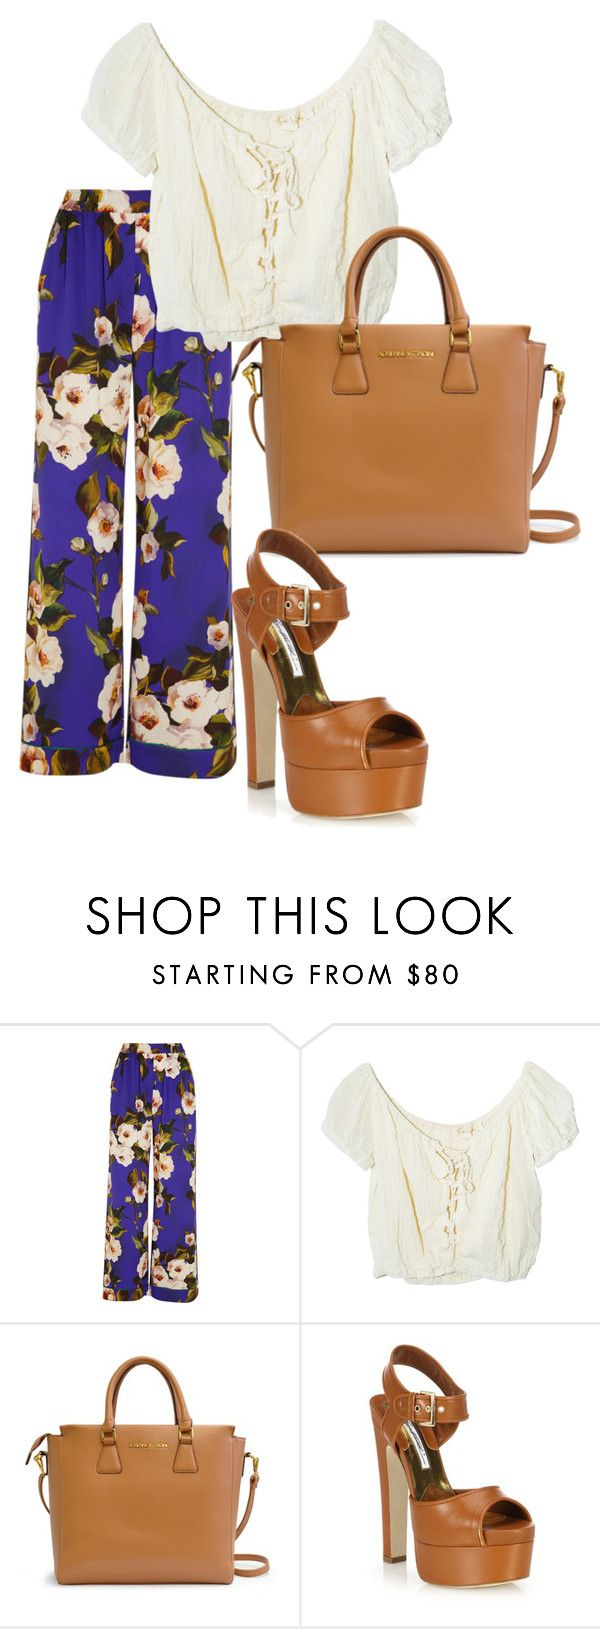 """""""What to wear tomorrow"""" by shanleigh543 on Polyvore featuring Dolce&Gabbana, Jens Pirate Booty, Adrienne Vittadini, Brian Atwood, outfit, floralprint and widelegpants"""